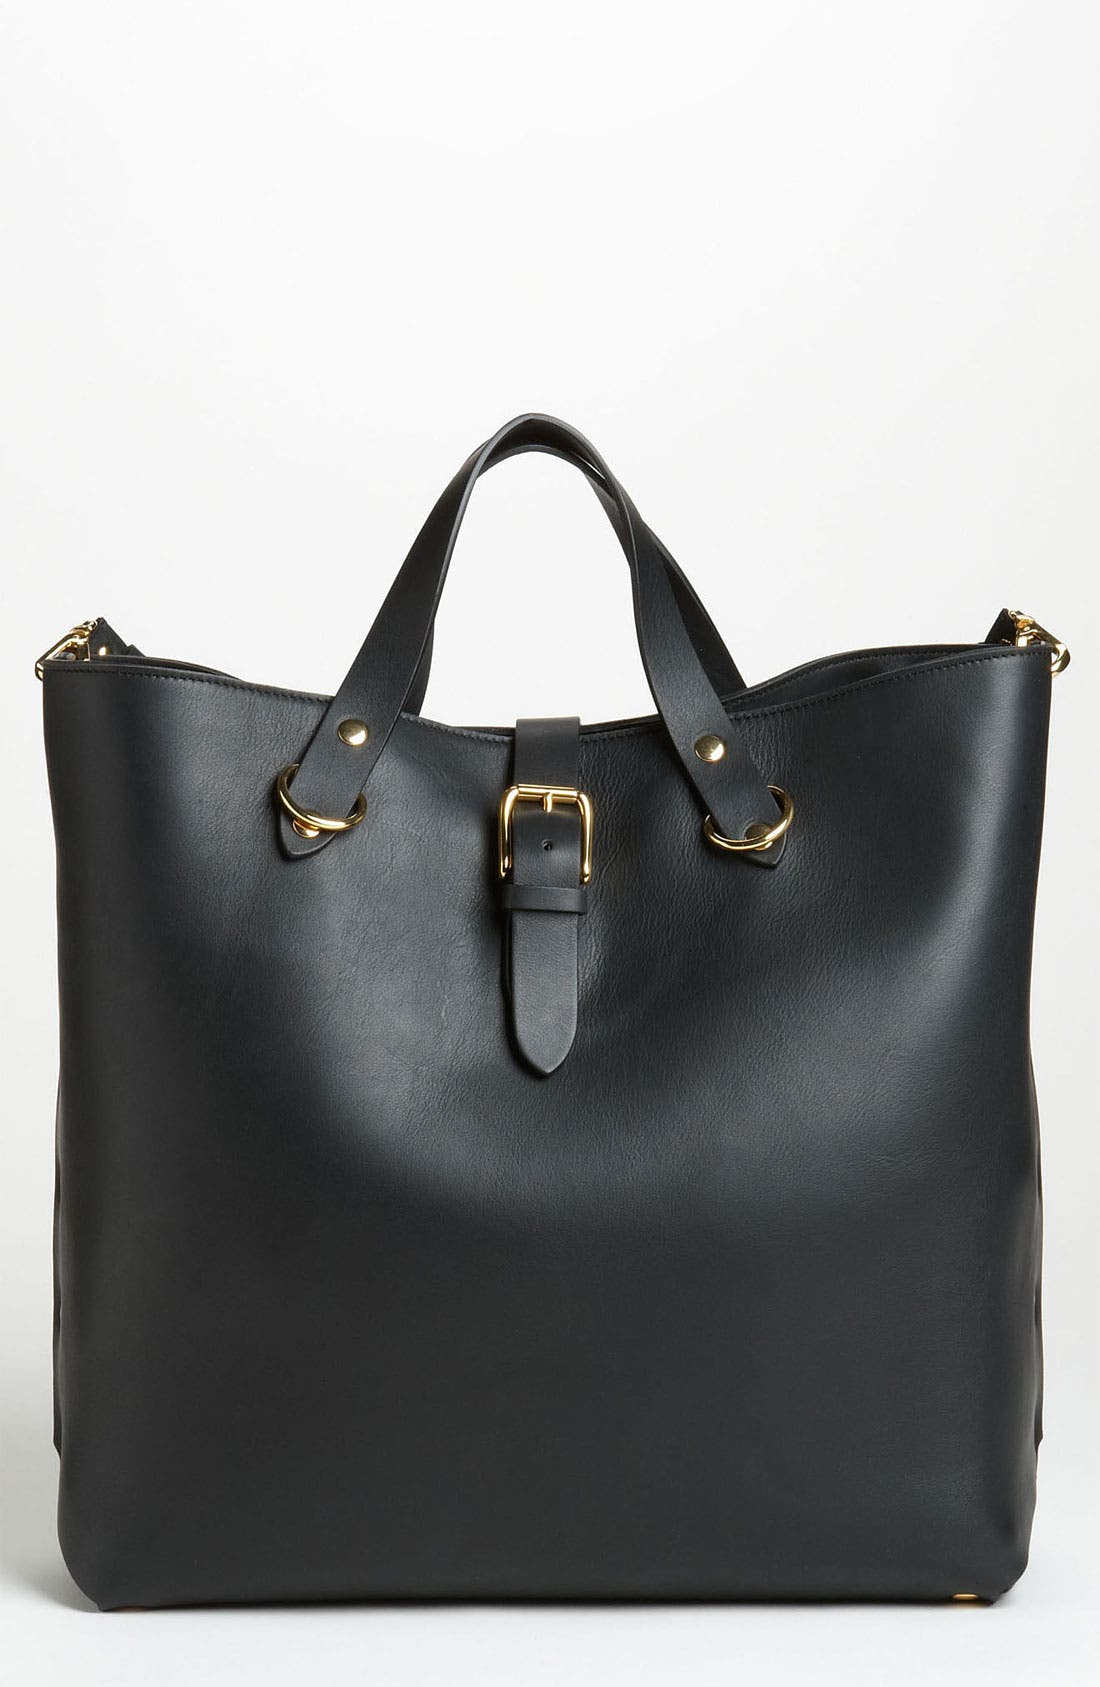 Main Image - Marni 'Large' Studded Leather Tote